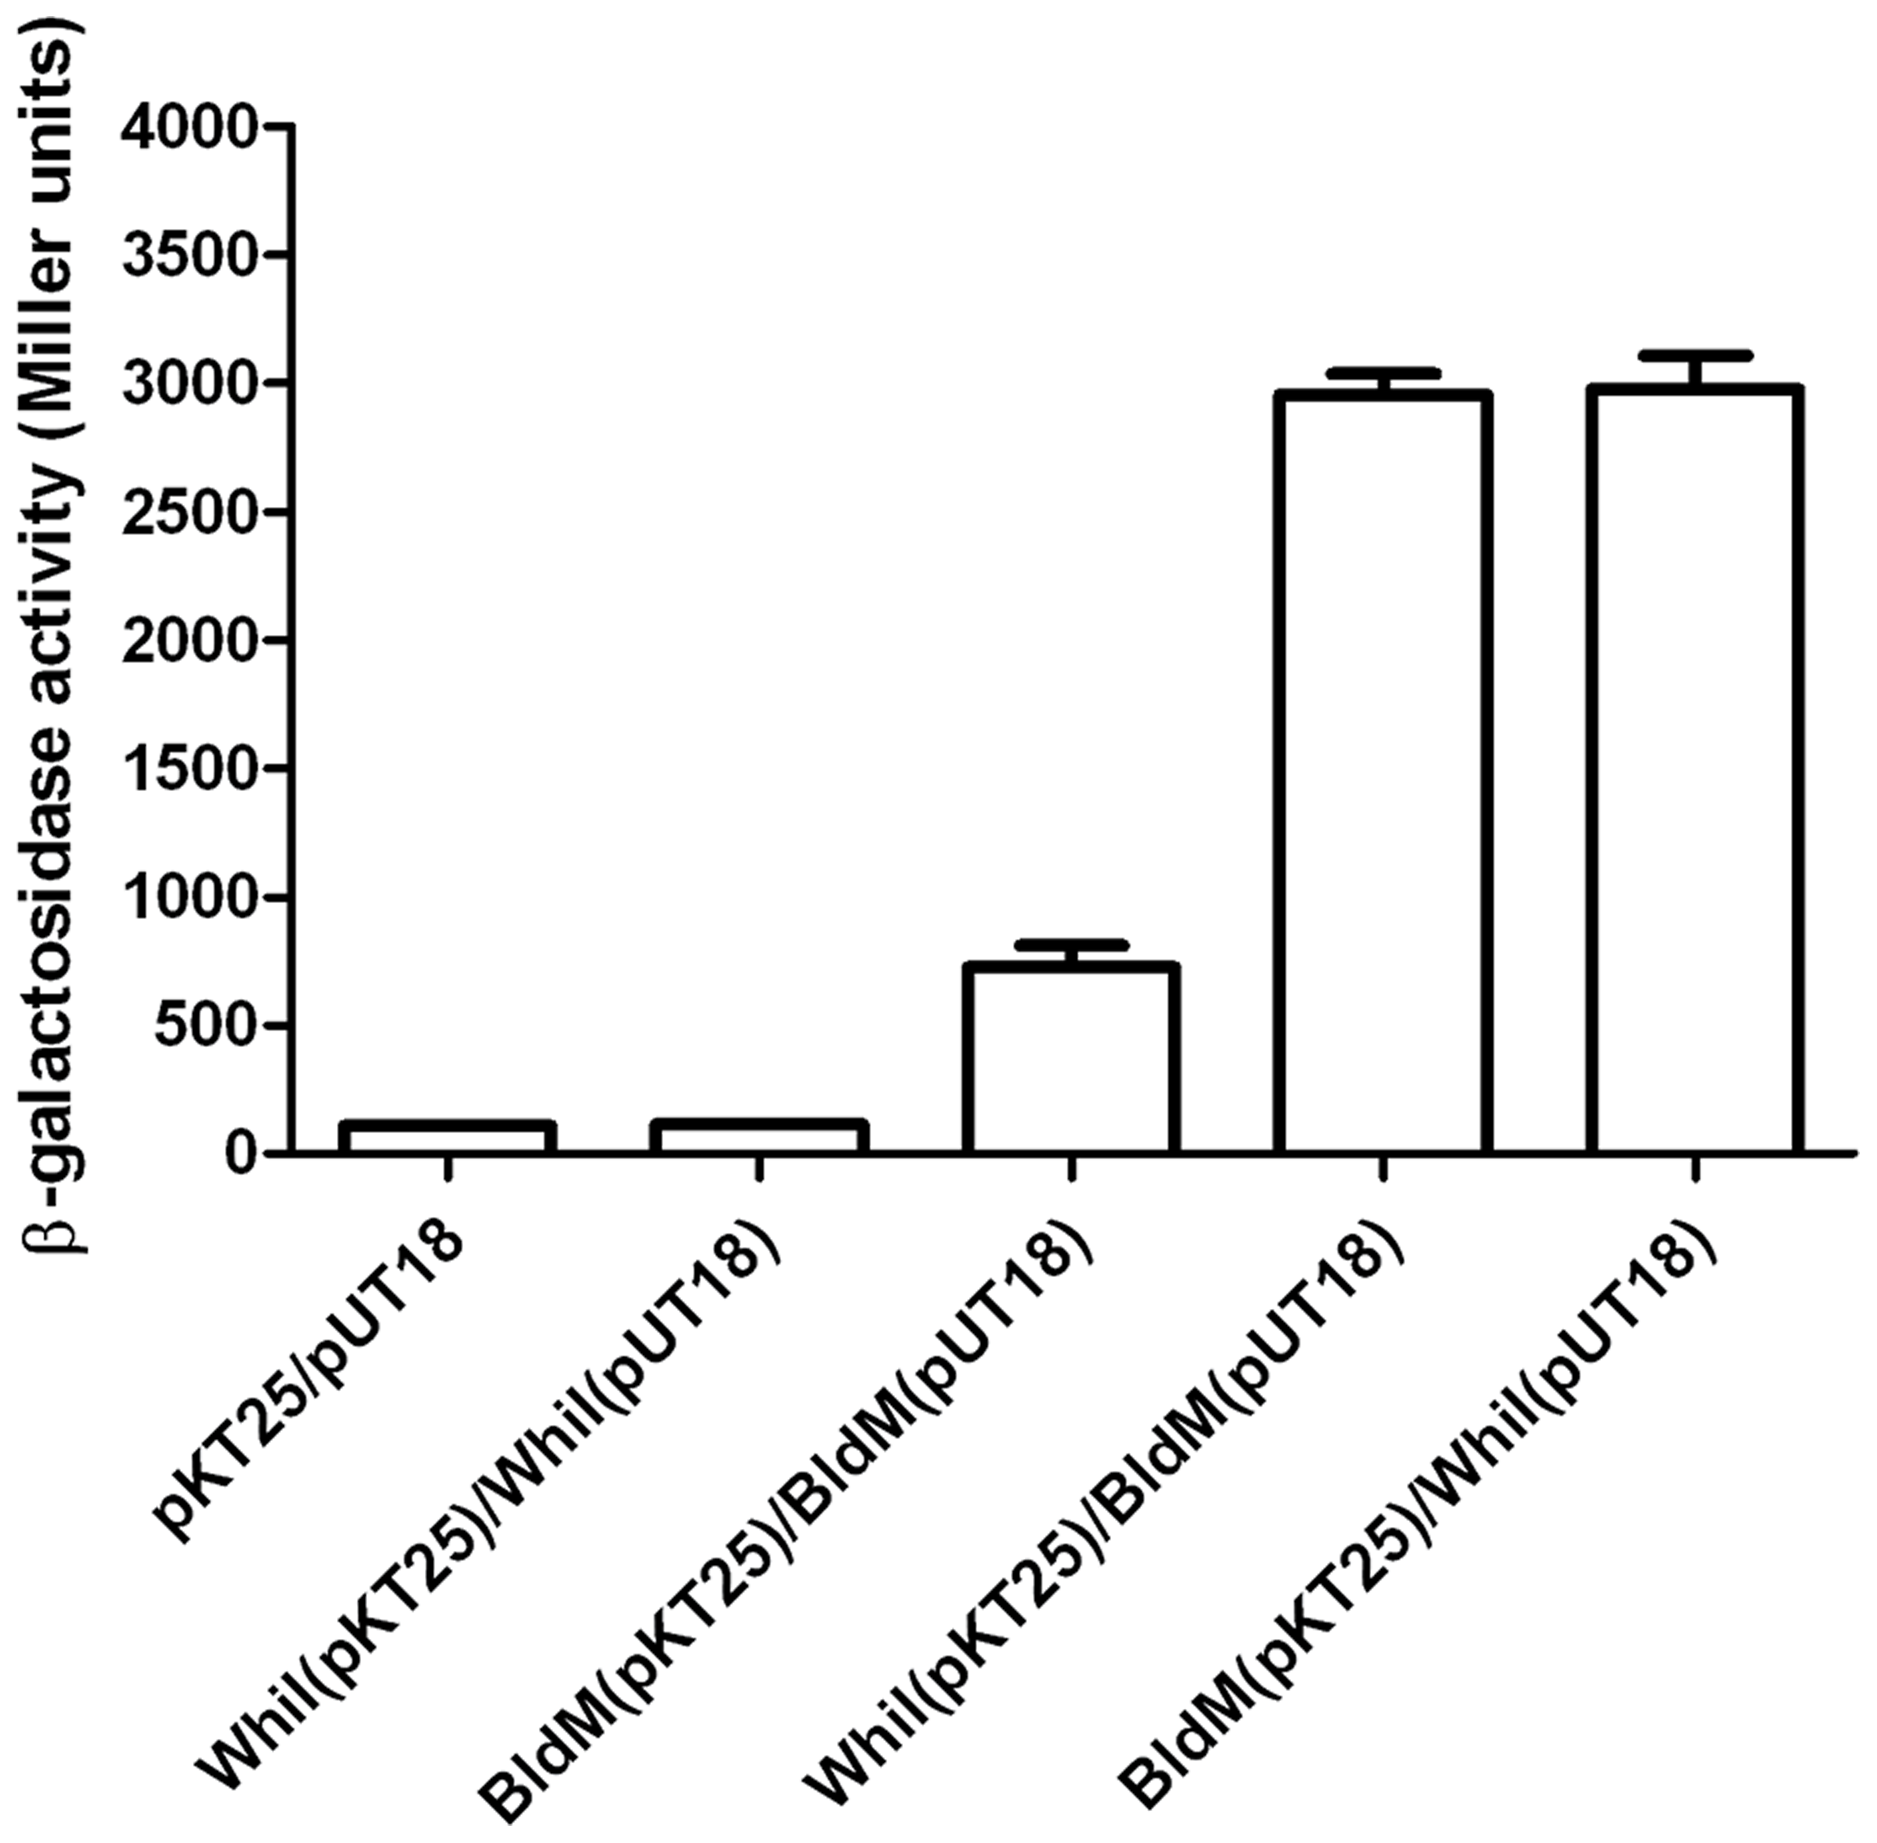 Bacterial two-hybrid analysis of BldM-WhiI interaction.